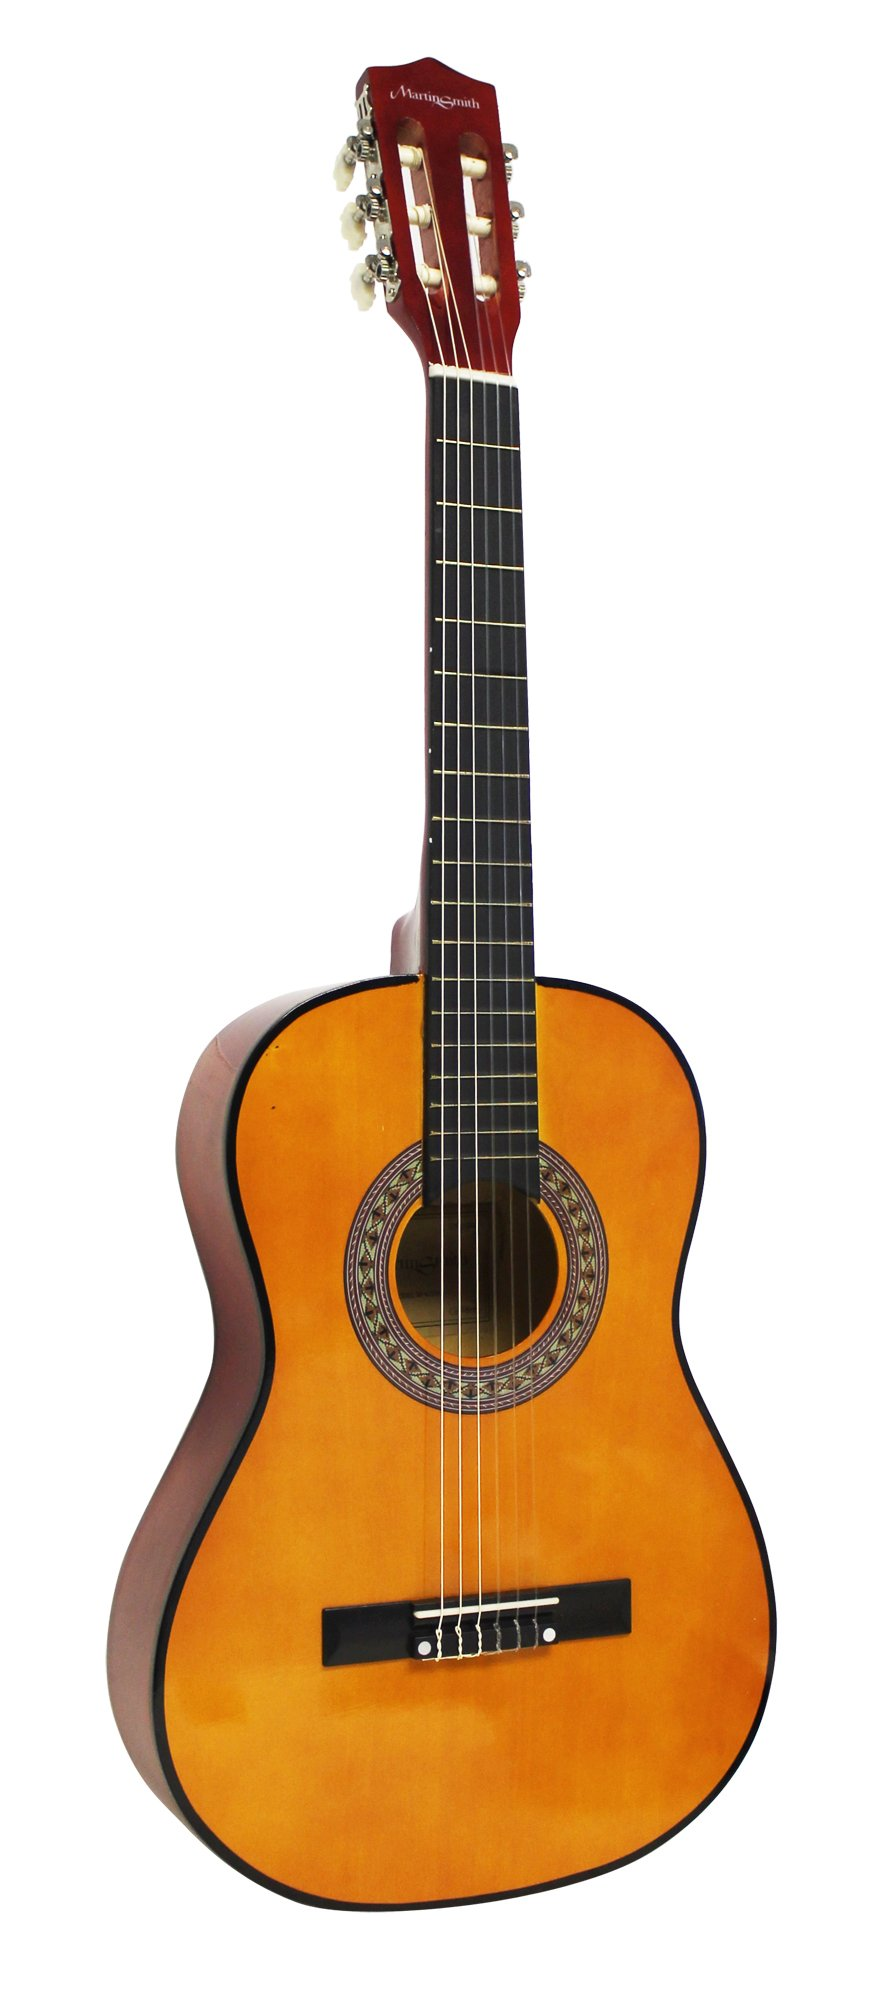 Martin Smith W-560-N Classical Guitar 3/4 Size 36'' for Children, Natural